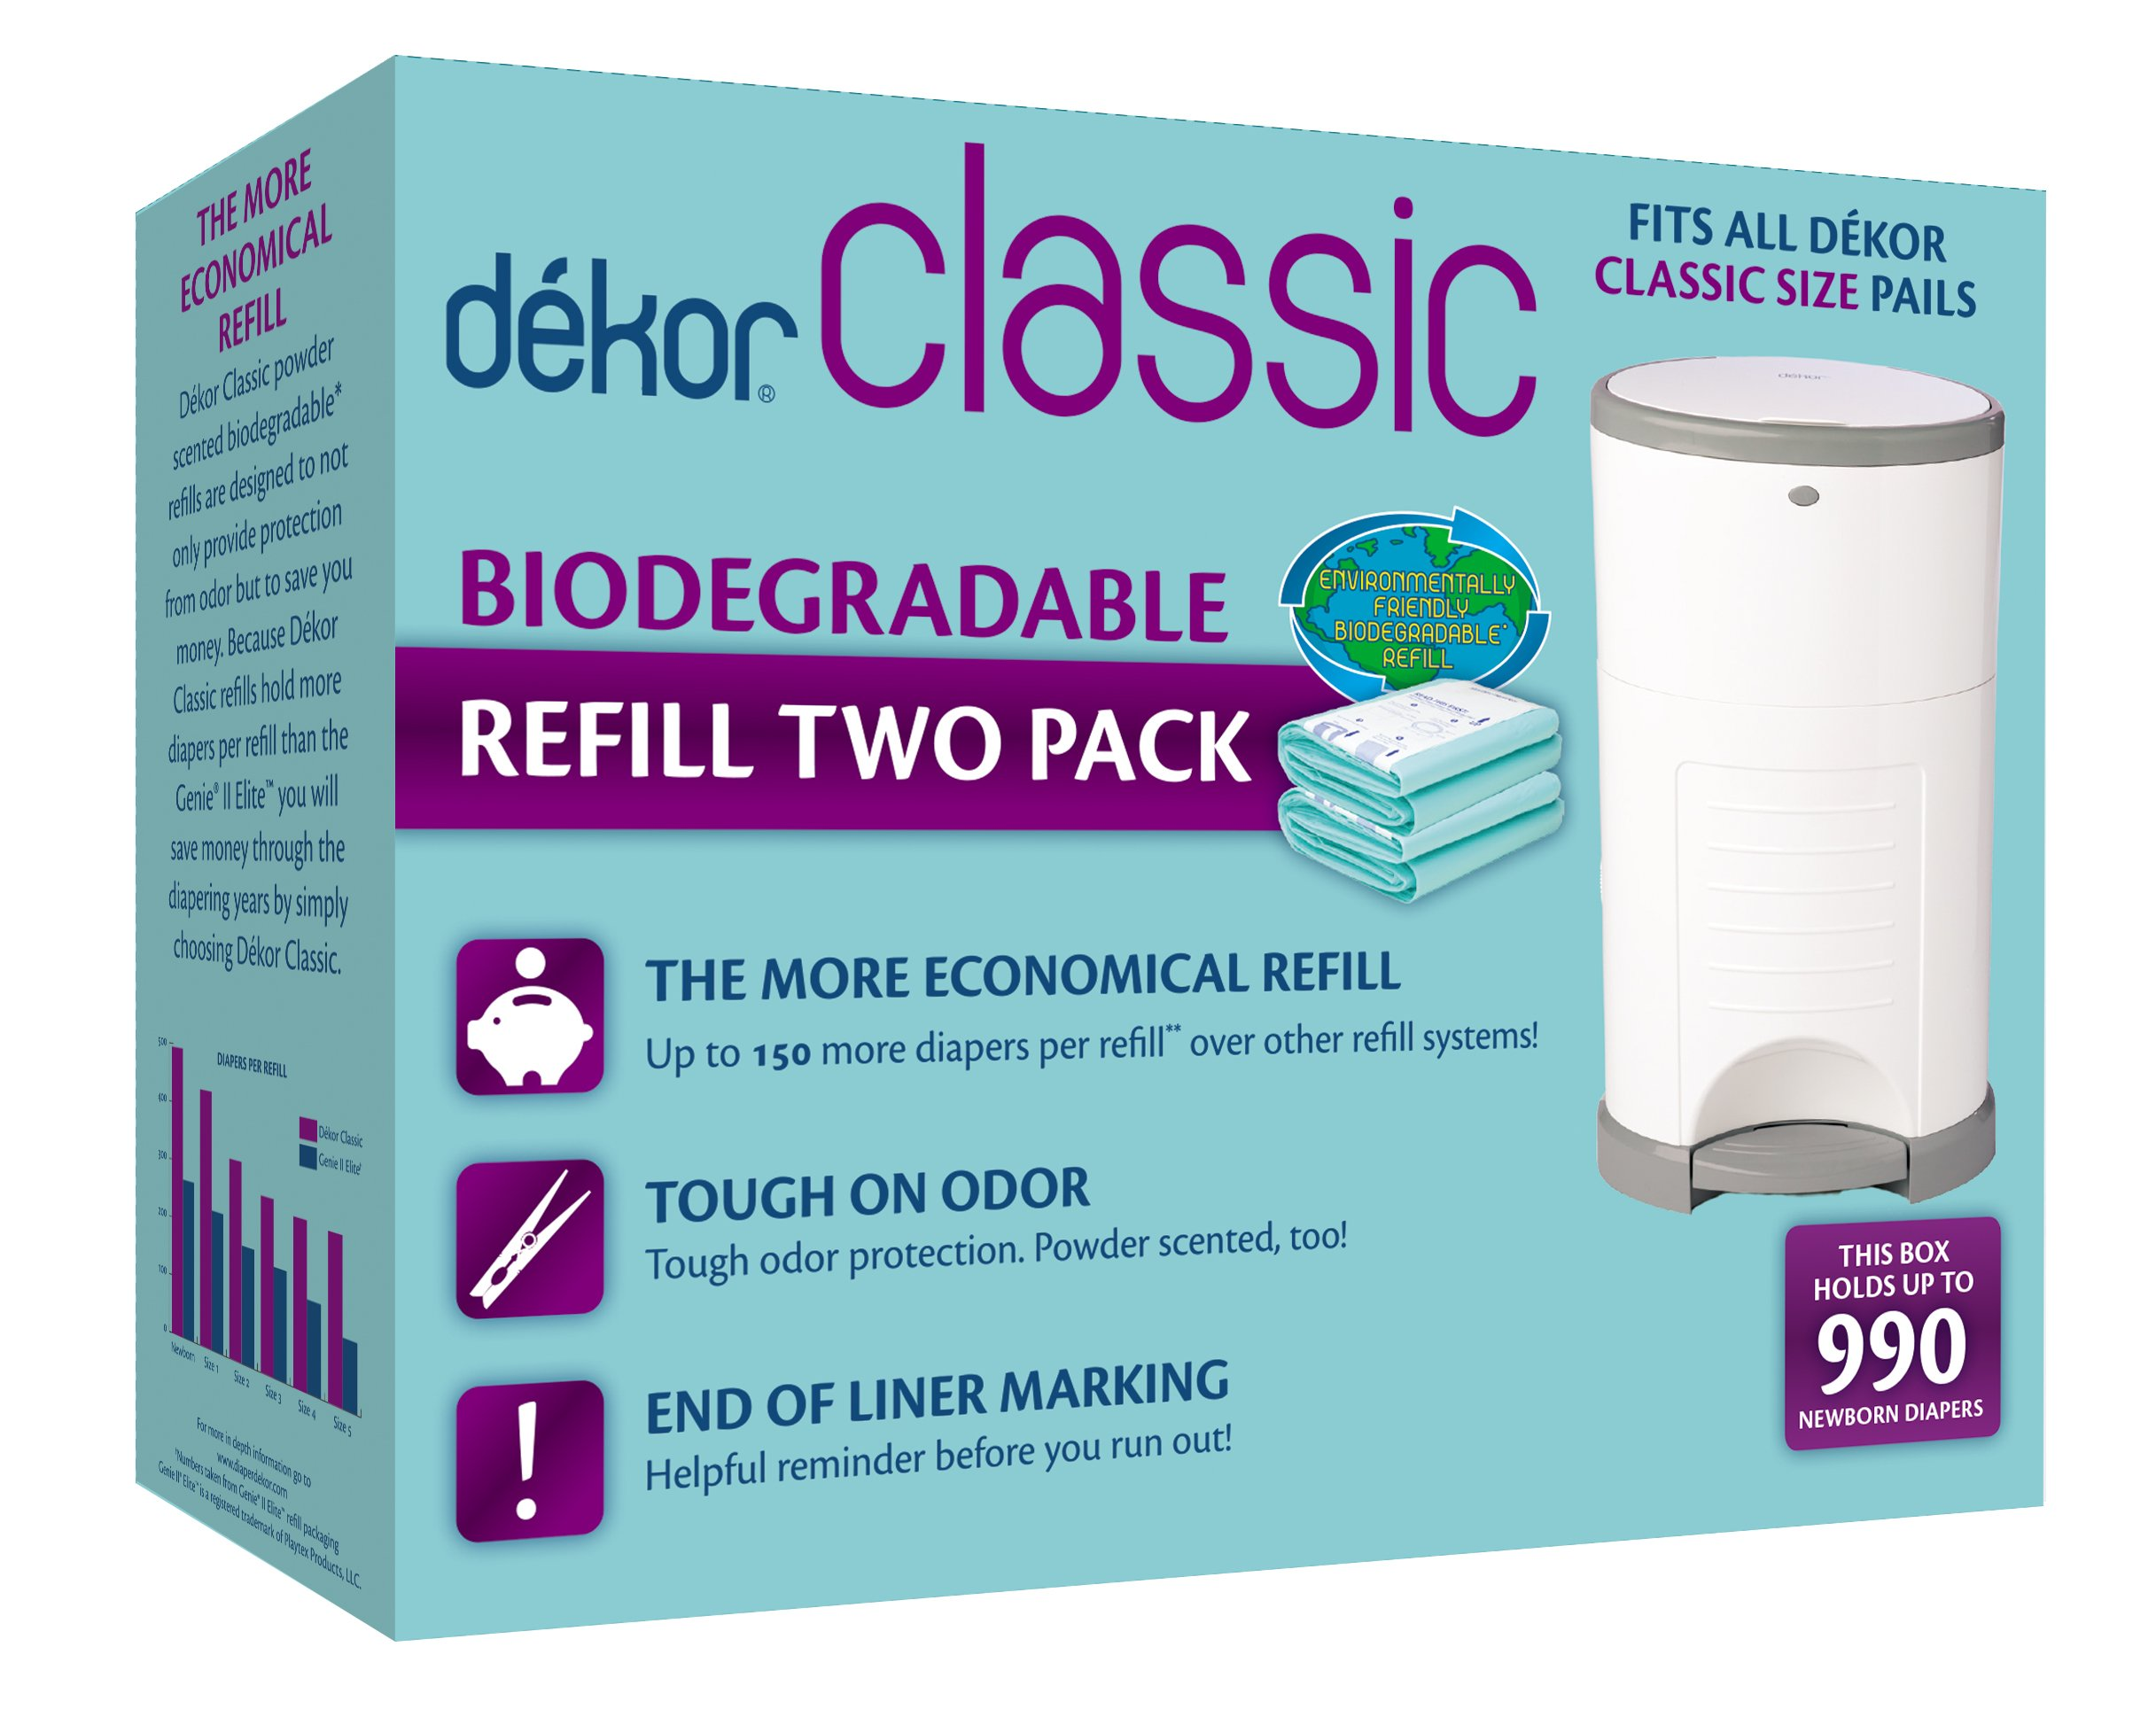 Dekor Classic Diaper Pail Biodegradable Refills | 2 Count | Most Economical Refill System | Quick and Simple to Replace | No Preset Bag Size - Use Only What You Need | Exclusive End-of-Liner Marking by DEKOR